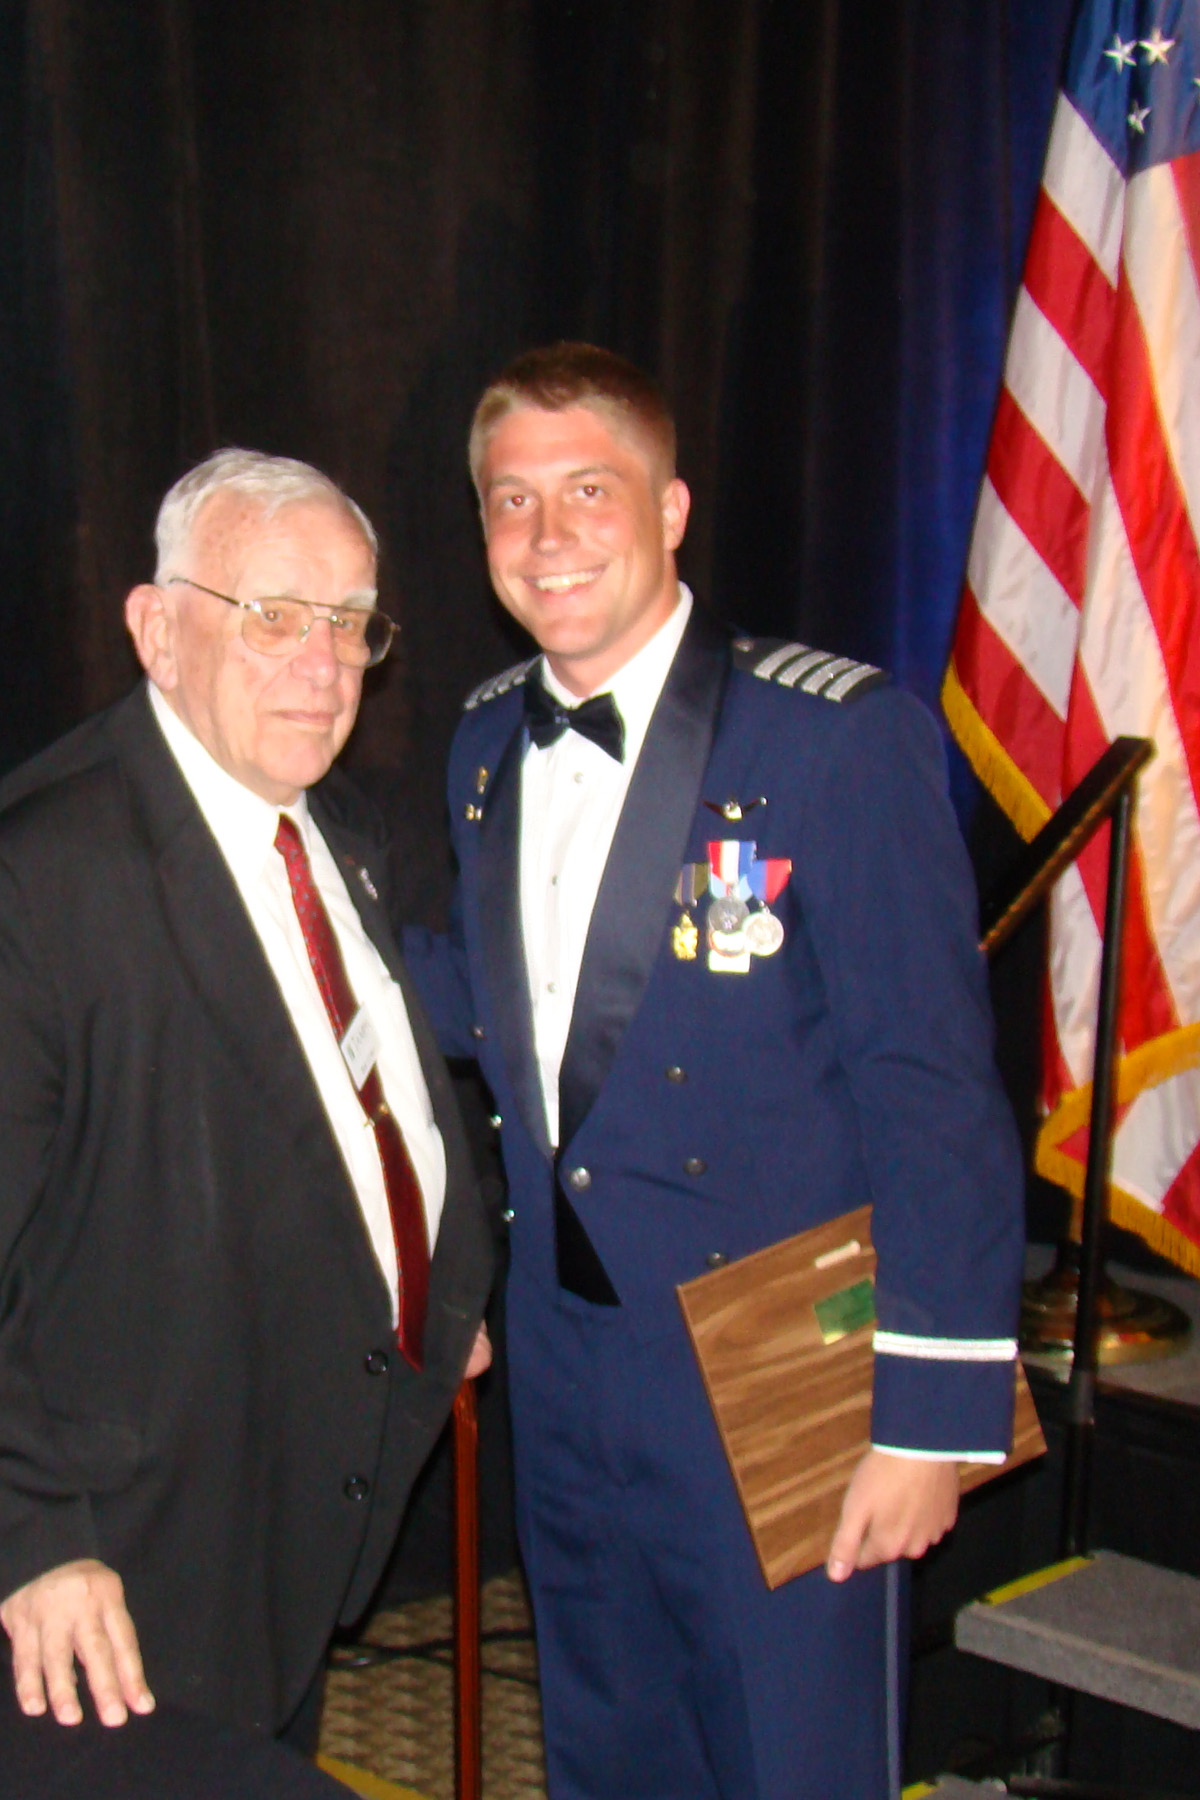 Mr. Bob Cutler, Tampa COC, and James Leenman, 2 Apr '09.jpg